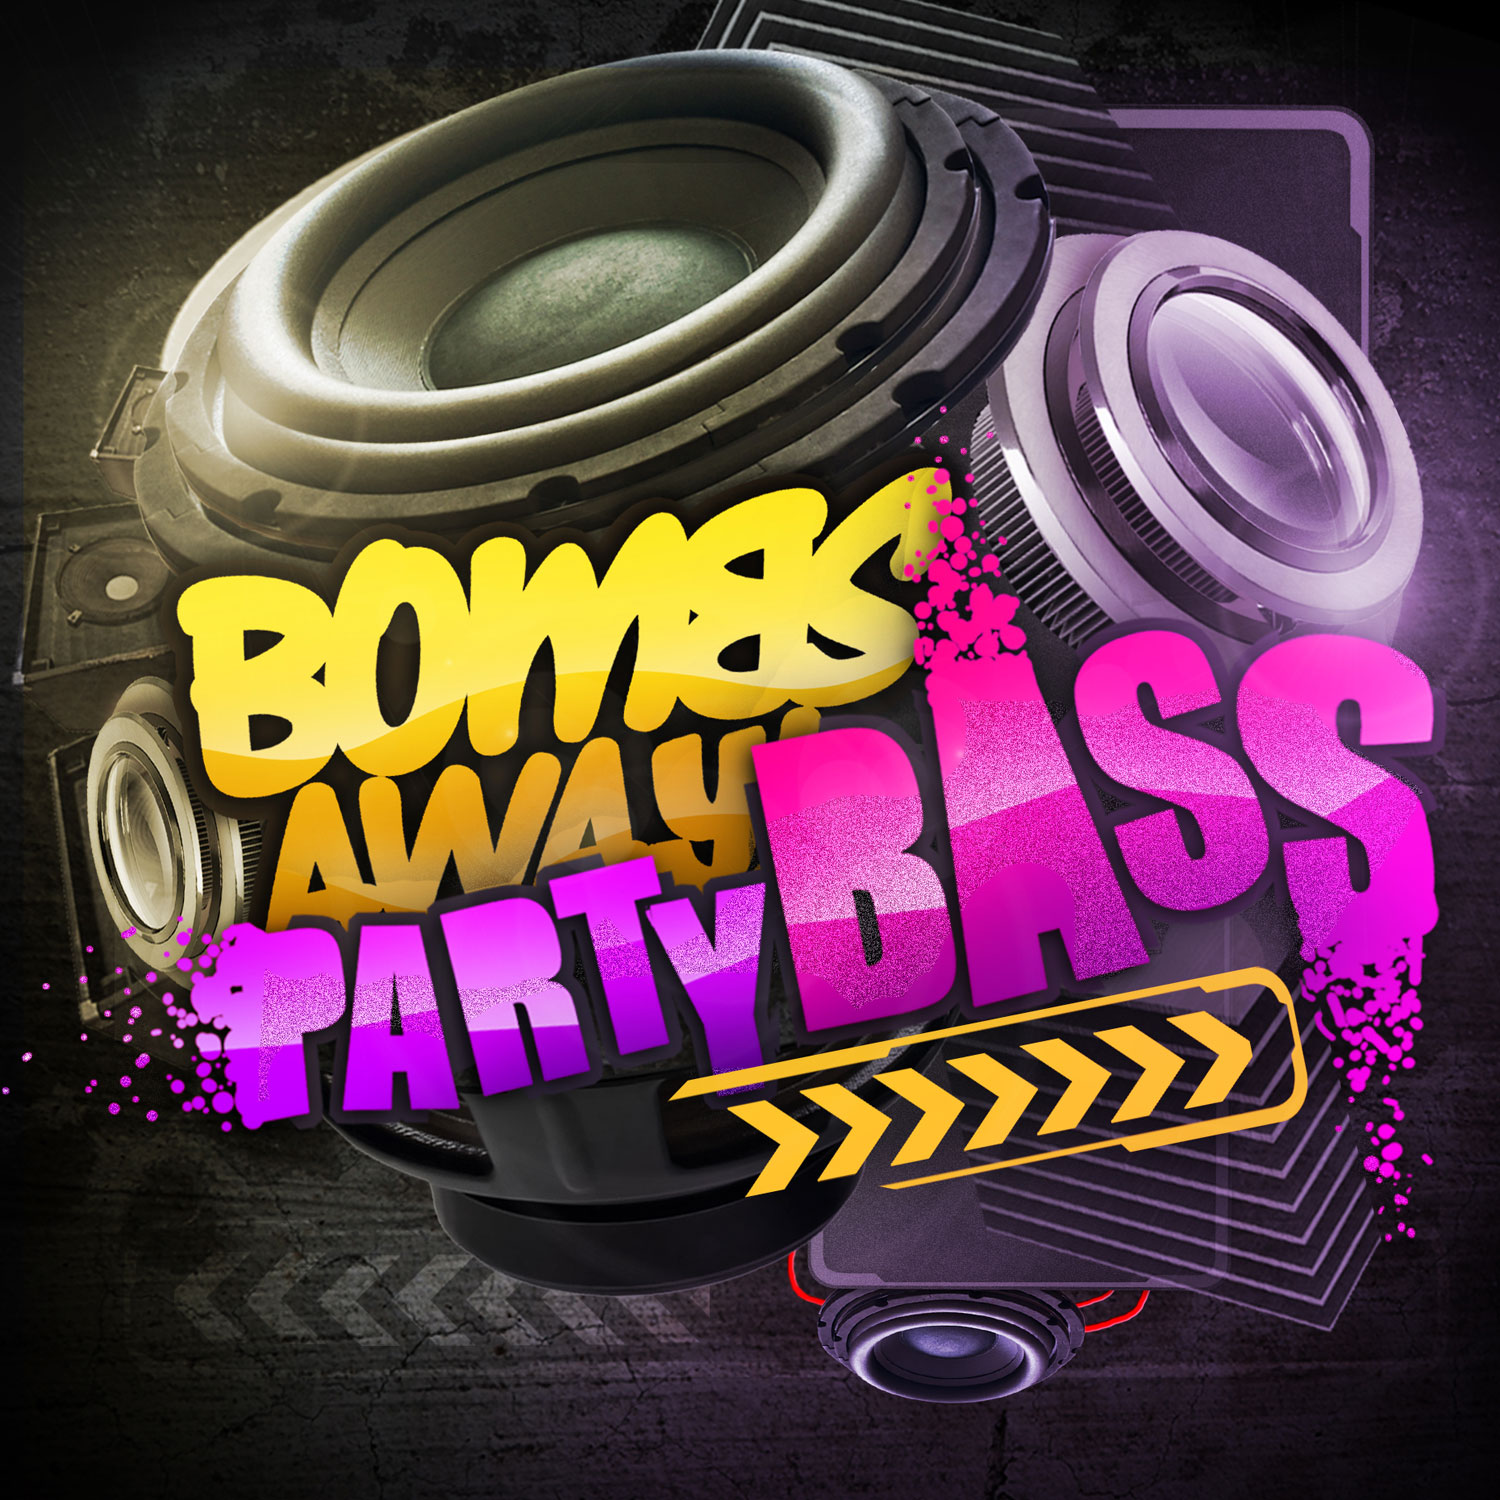 Bombs Away feat. The Twins - Party Bass (Clean Radio Edit)